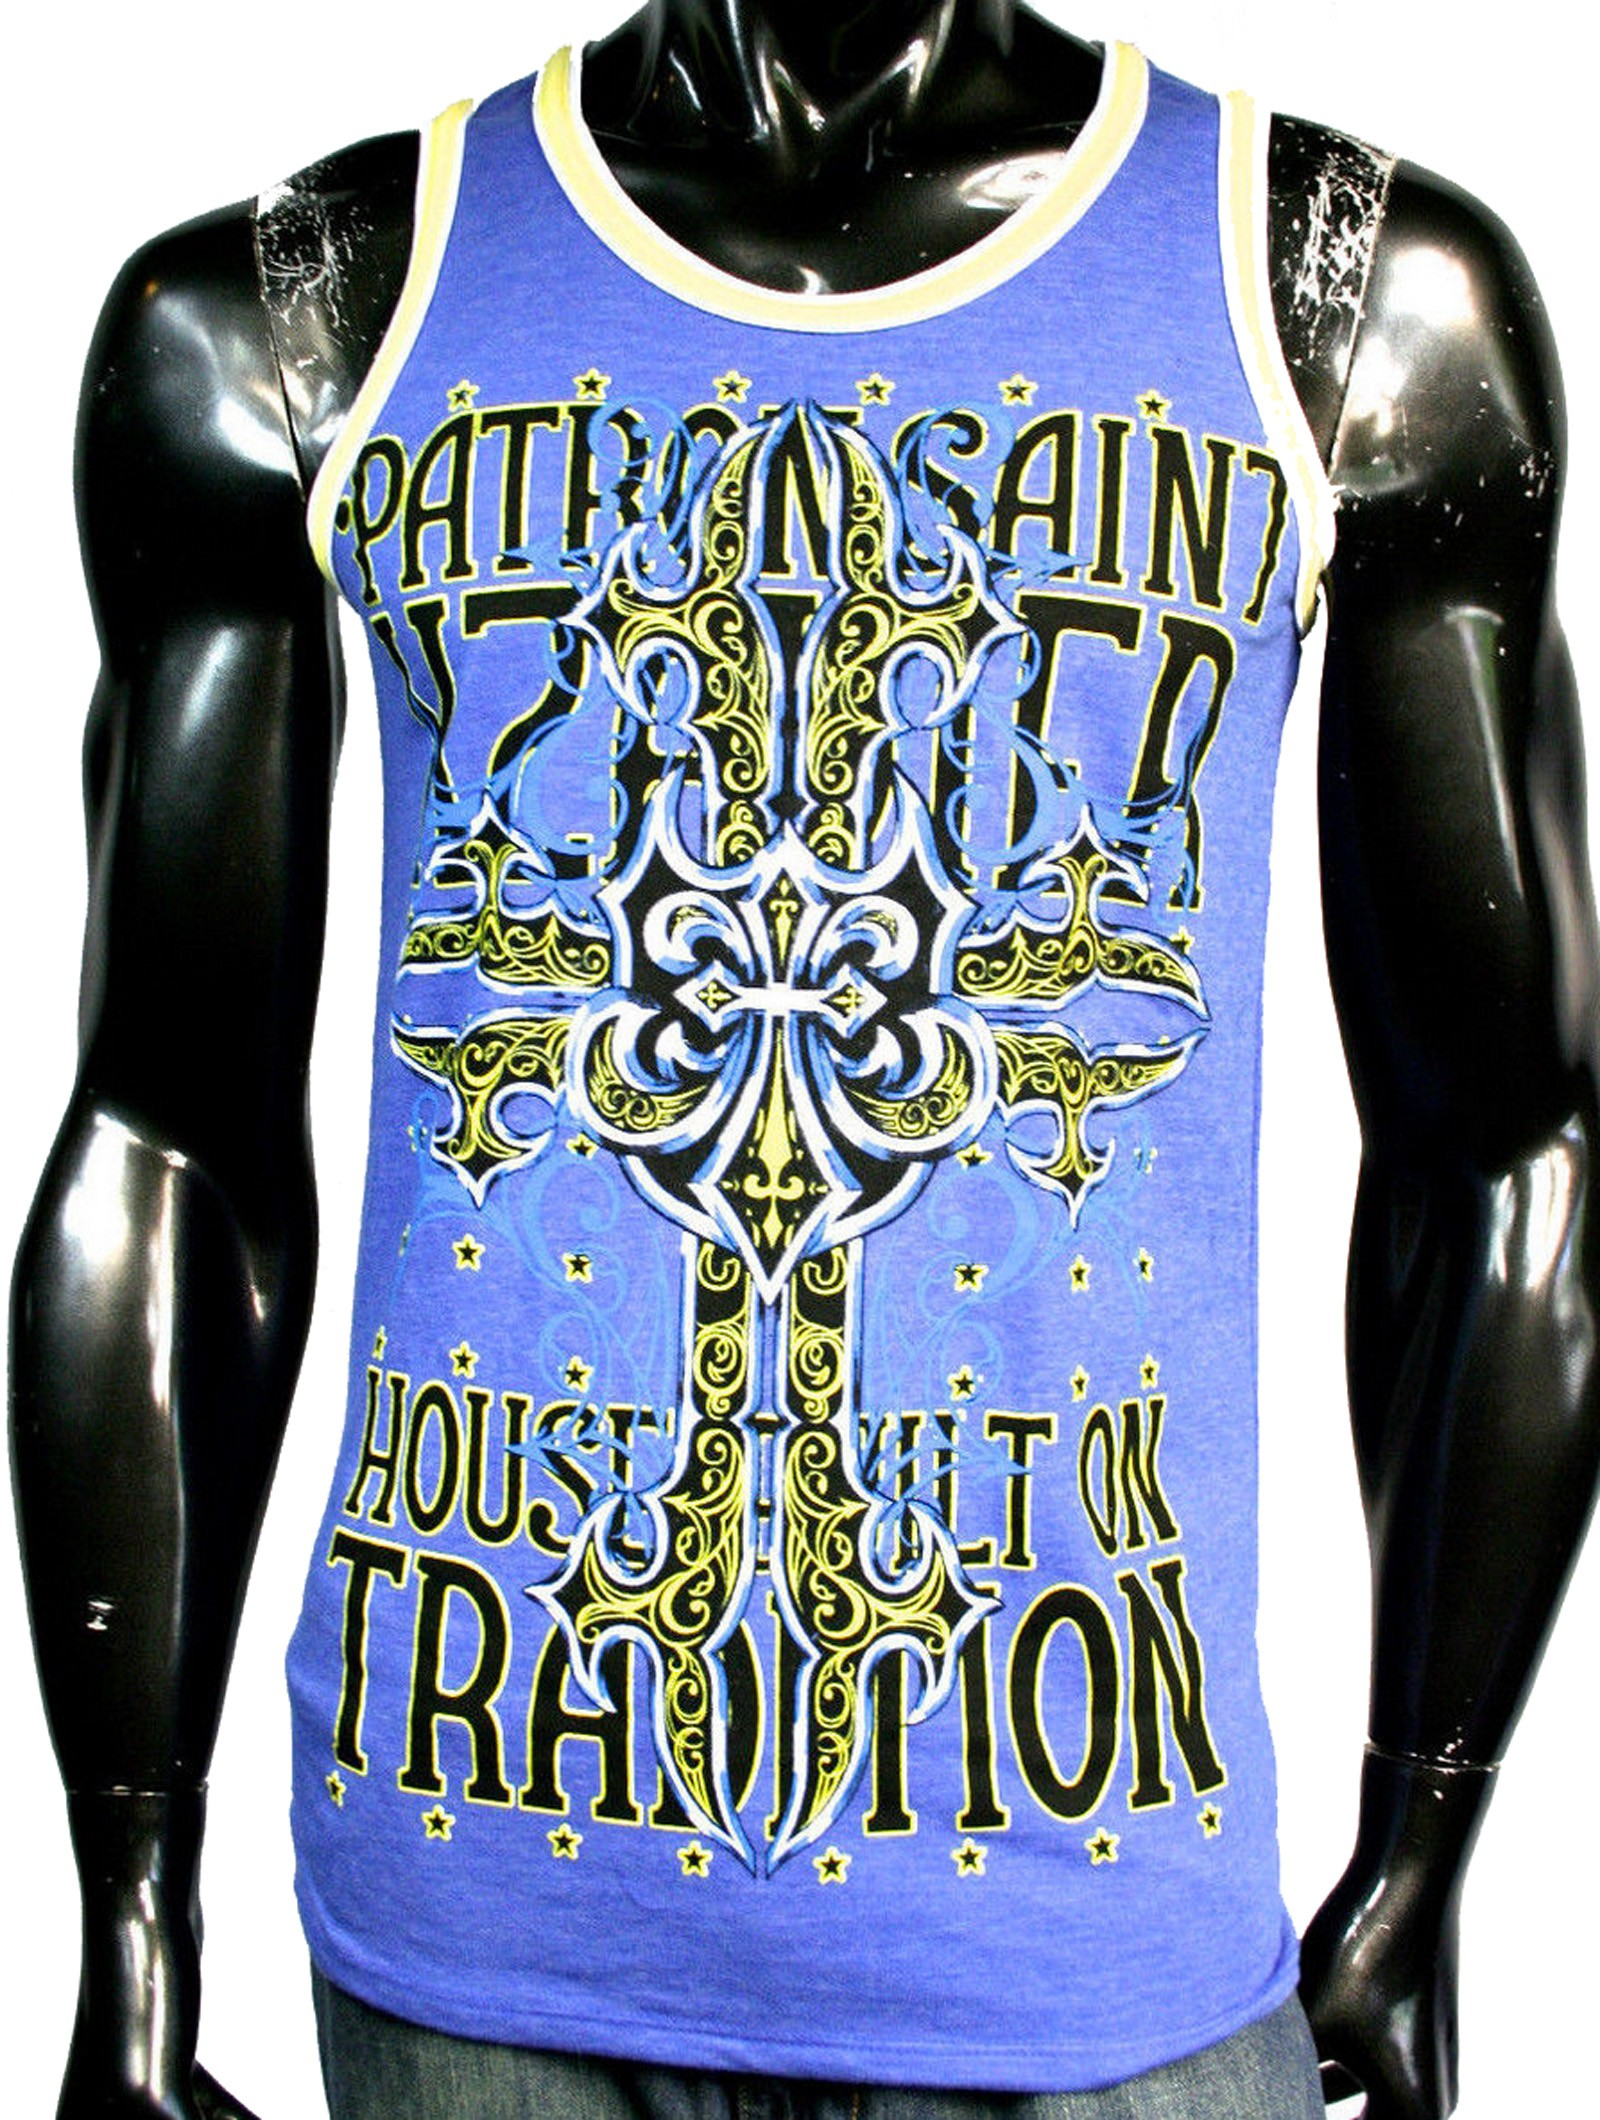 Xzavier - Cross My Heart Tank Top Shirt